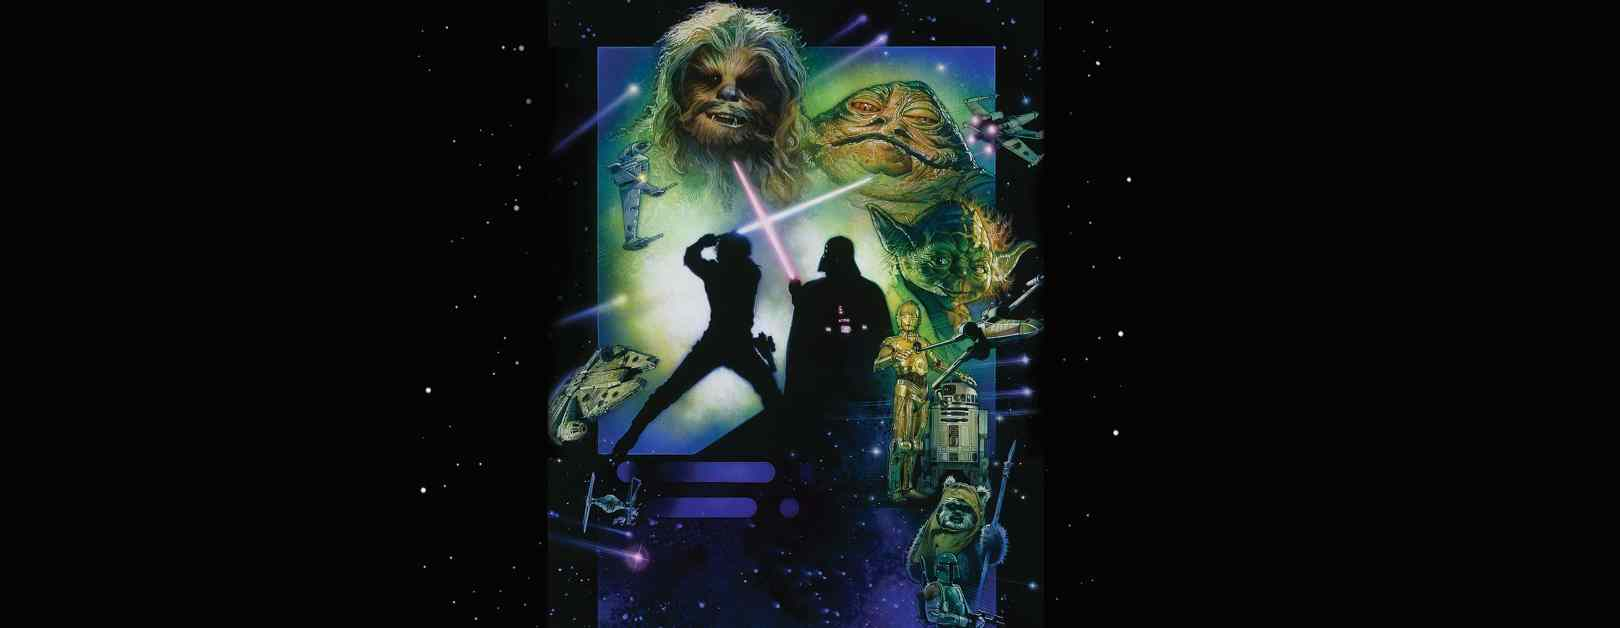 Star Wars: Return of the Jedi - In Concert